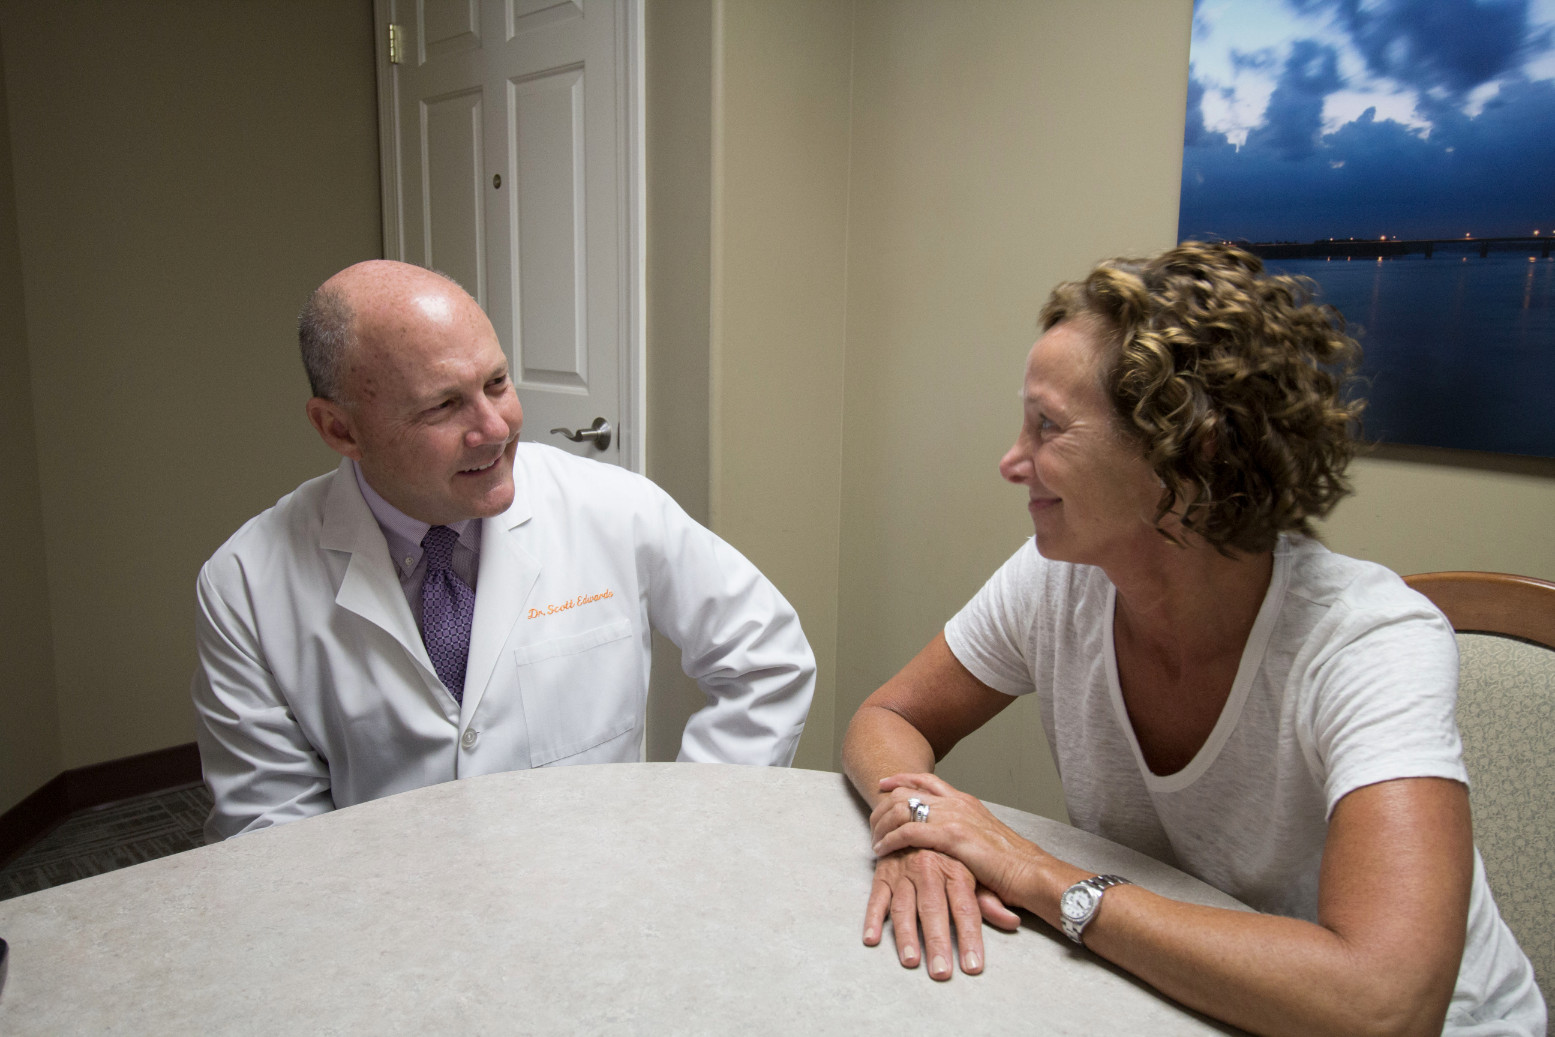 Dr. Edwards talking to a patient